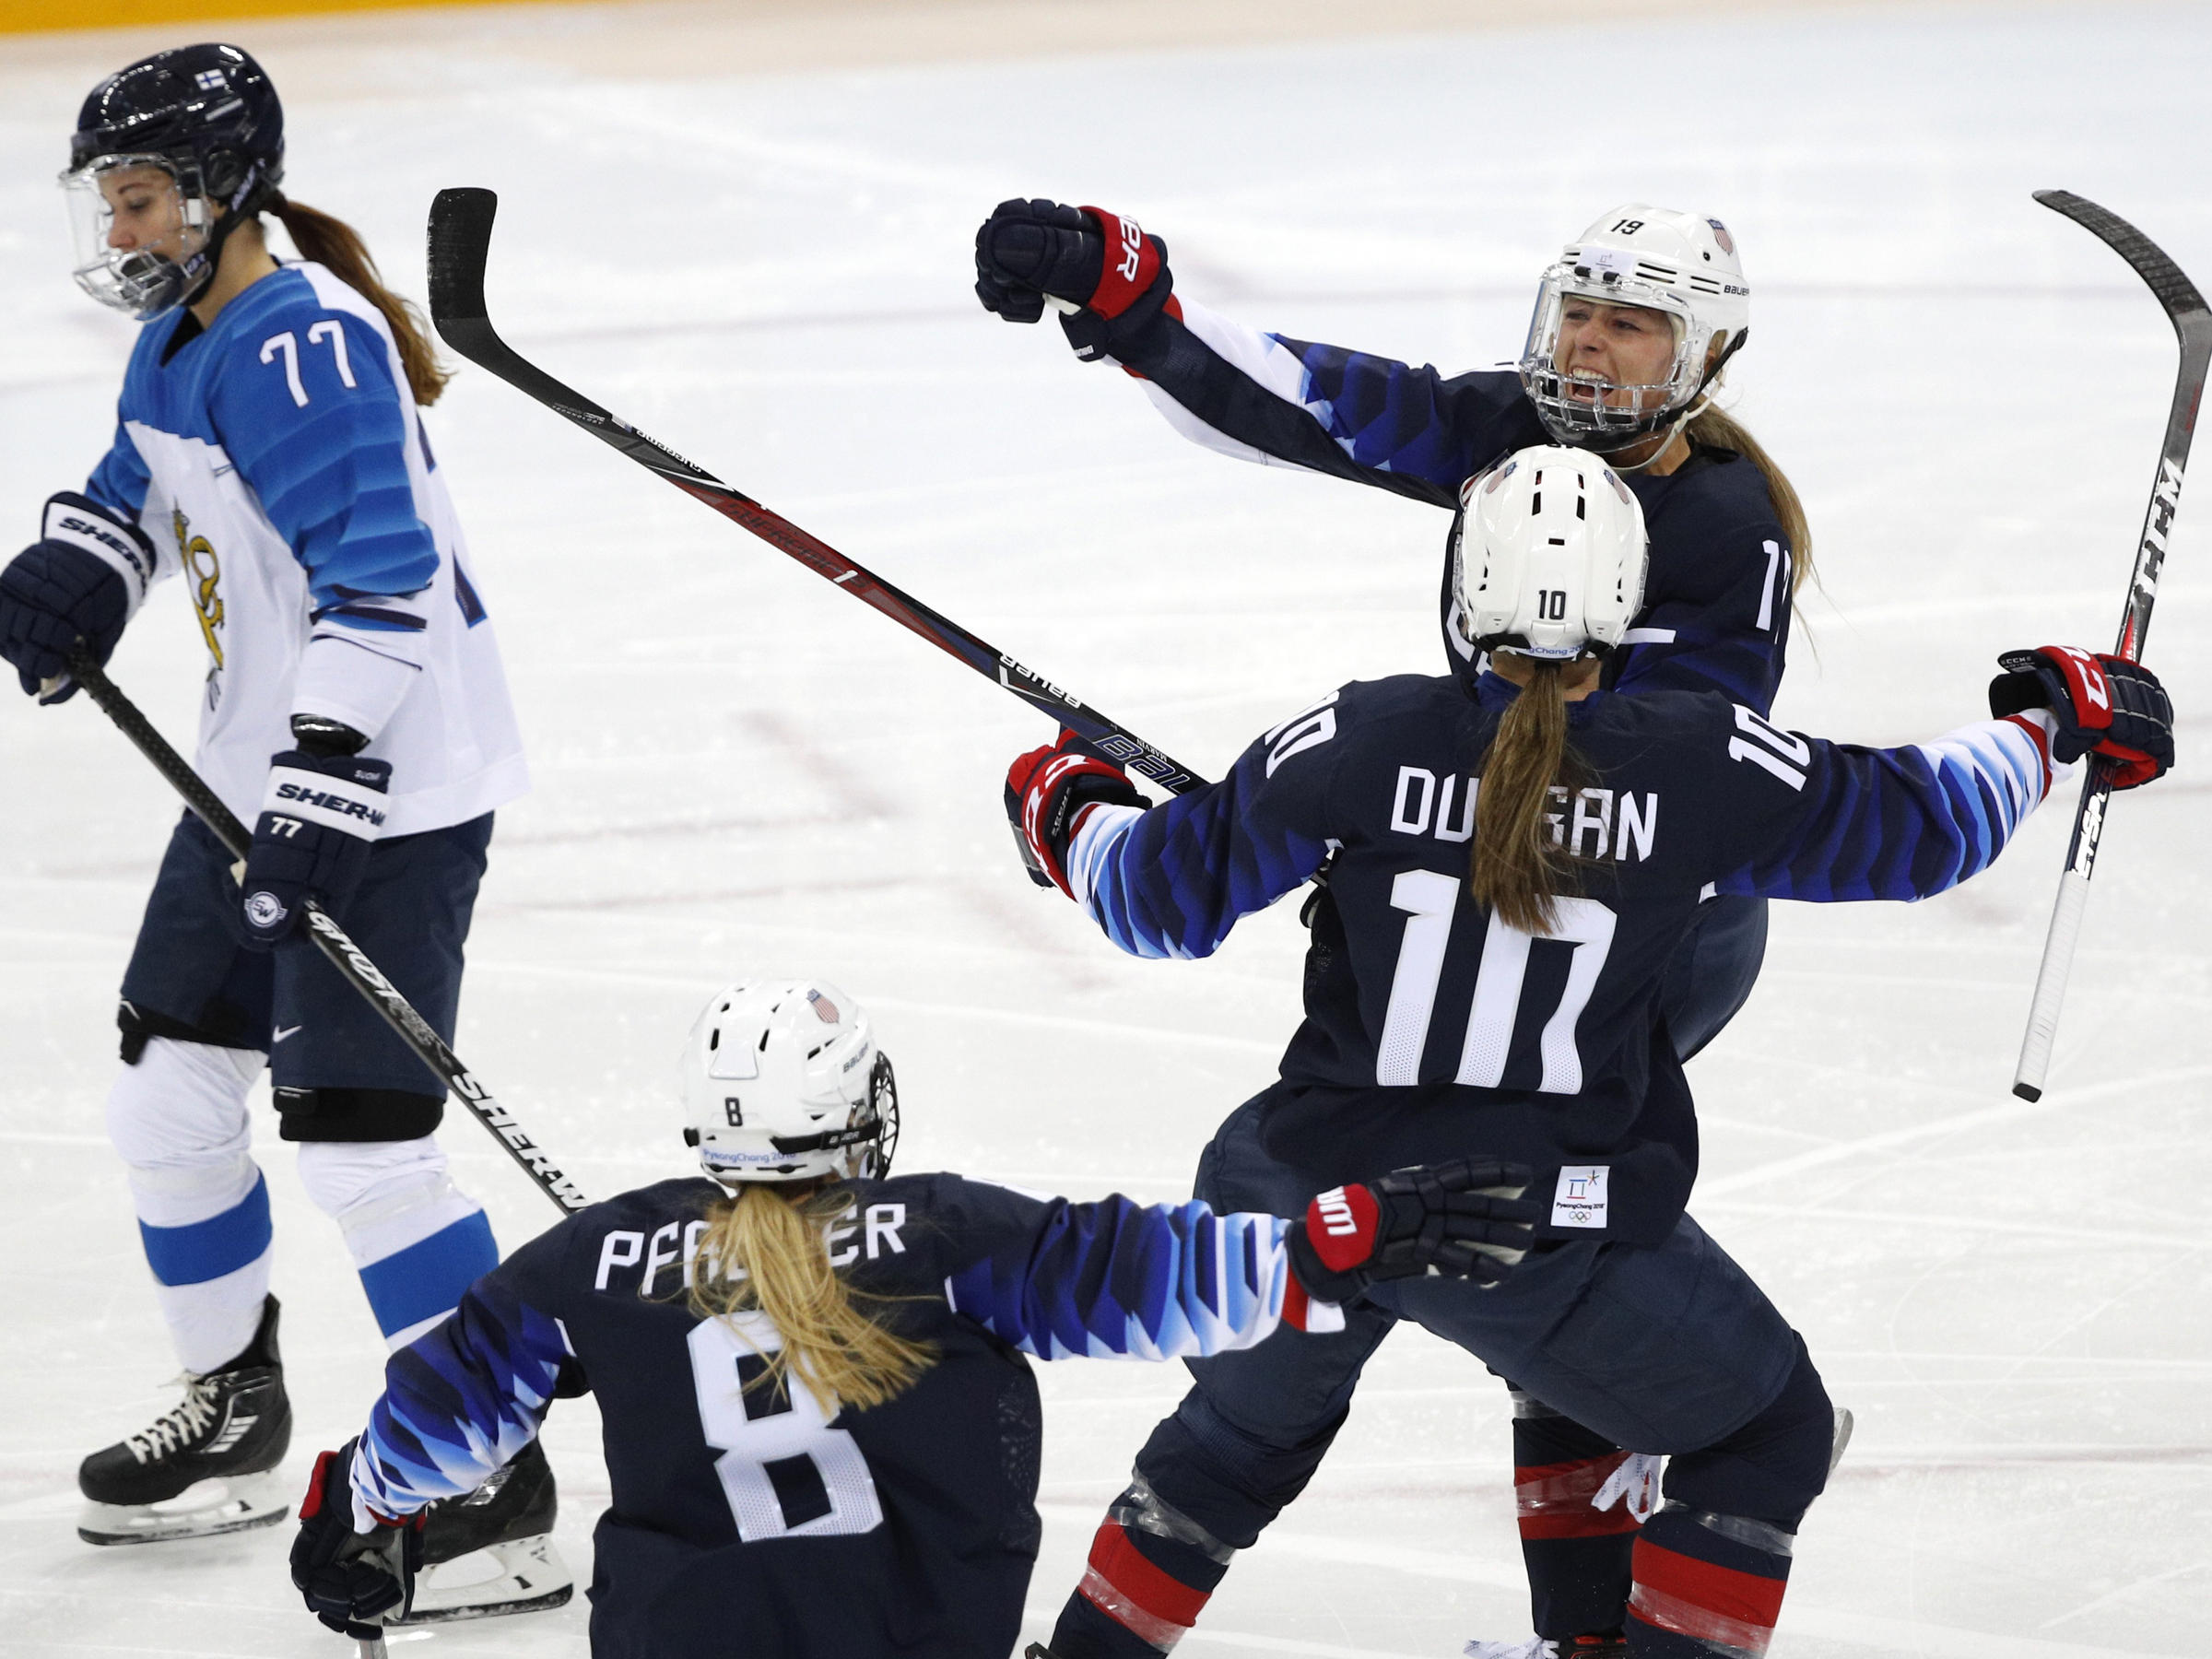 How long is an Olympic ice hockey game? - Answers